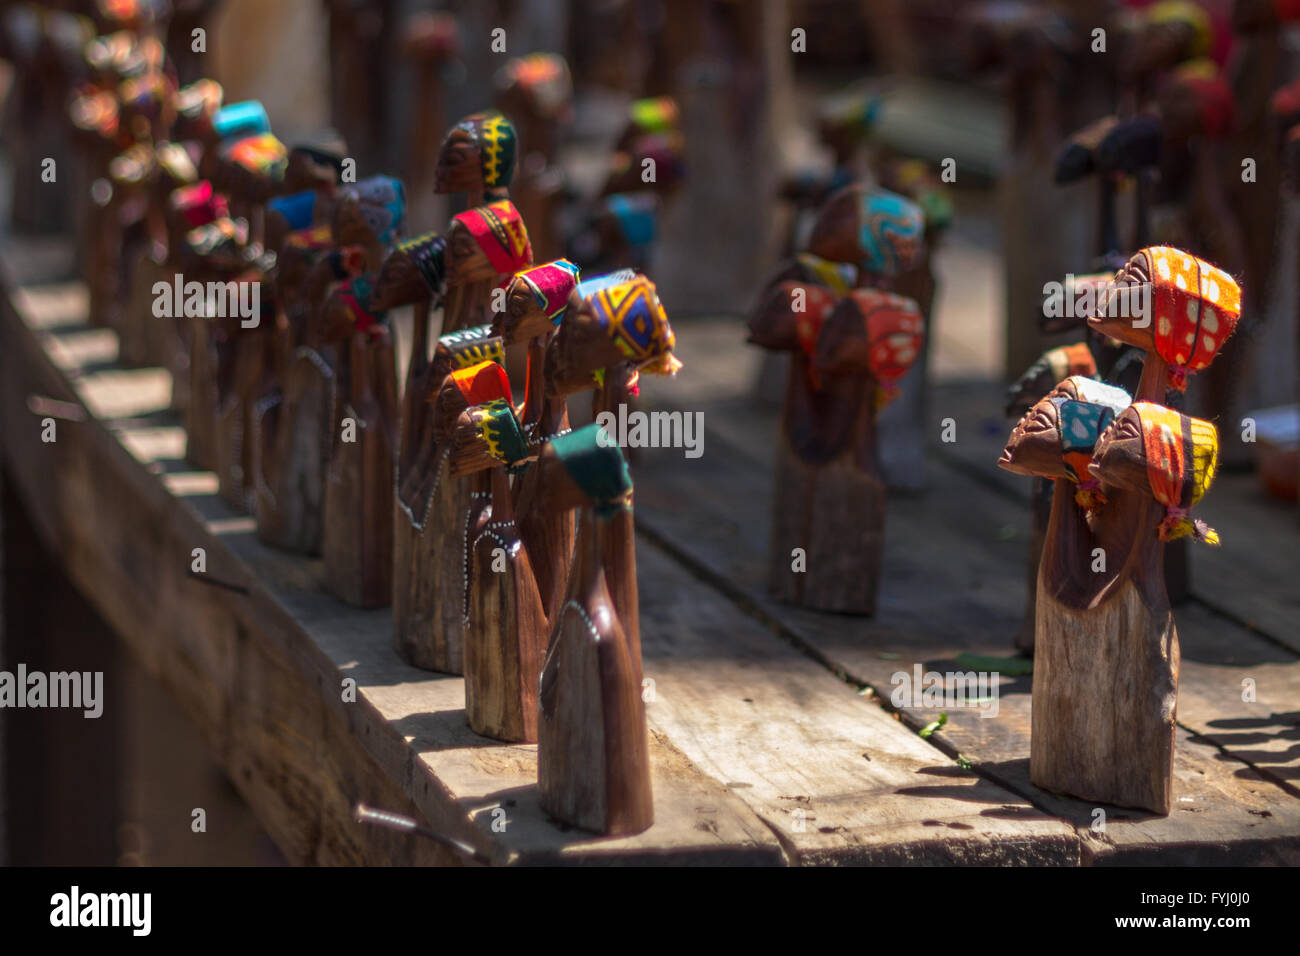 Wooden figurines at craft market in Swaziland. - Stock Image